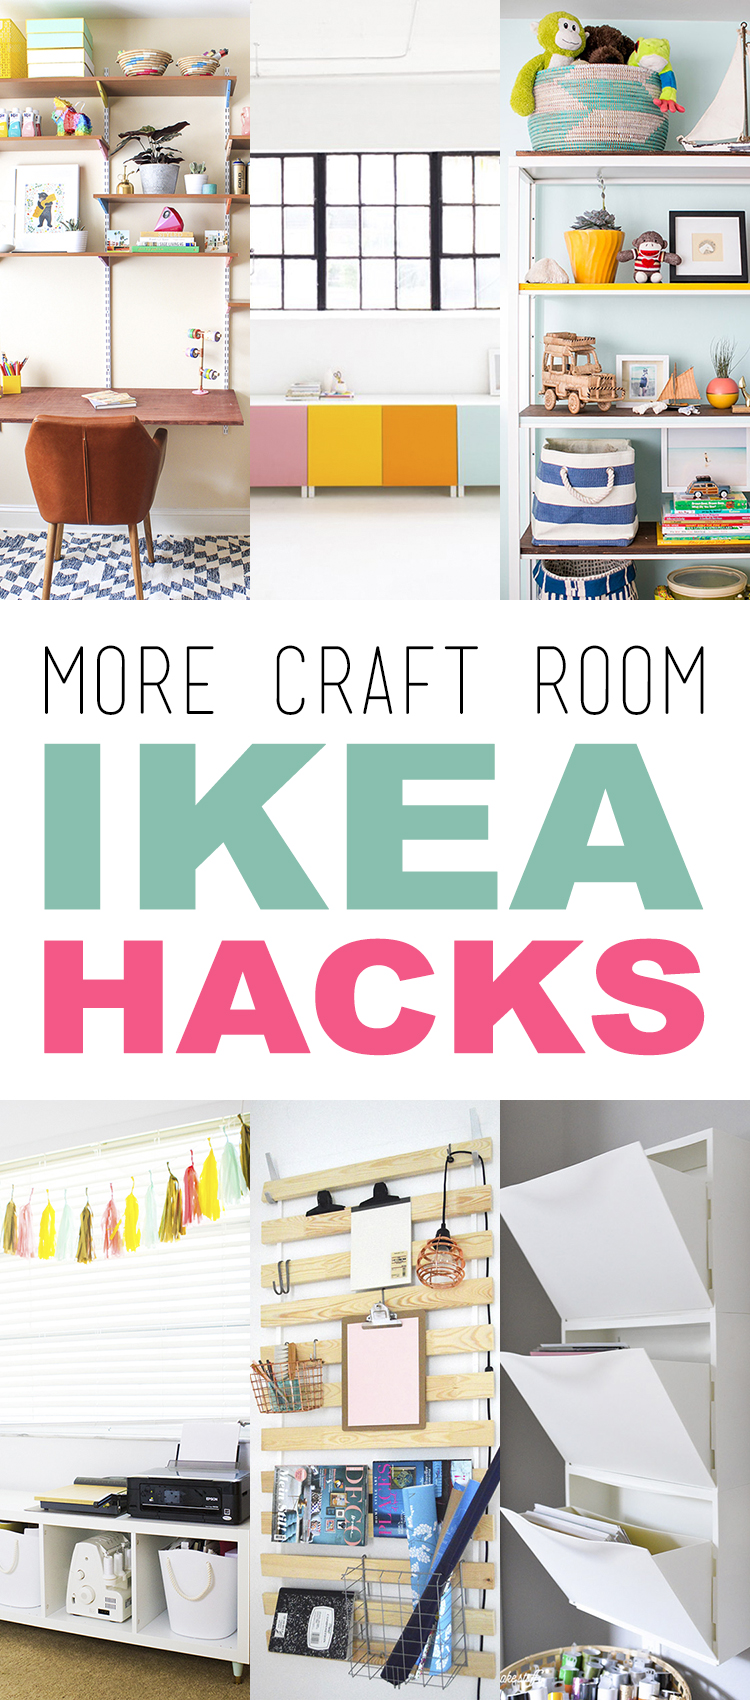 IkeaHack-tower-0001  sc 1 st  The Cottage Market & More Craft Room IKEA Hacks - The Cottage Market